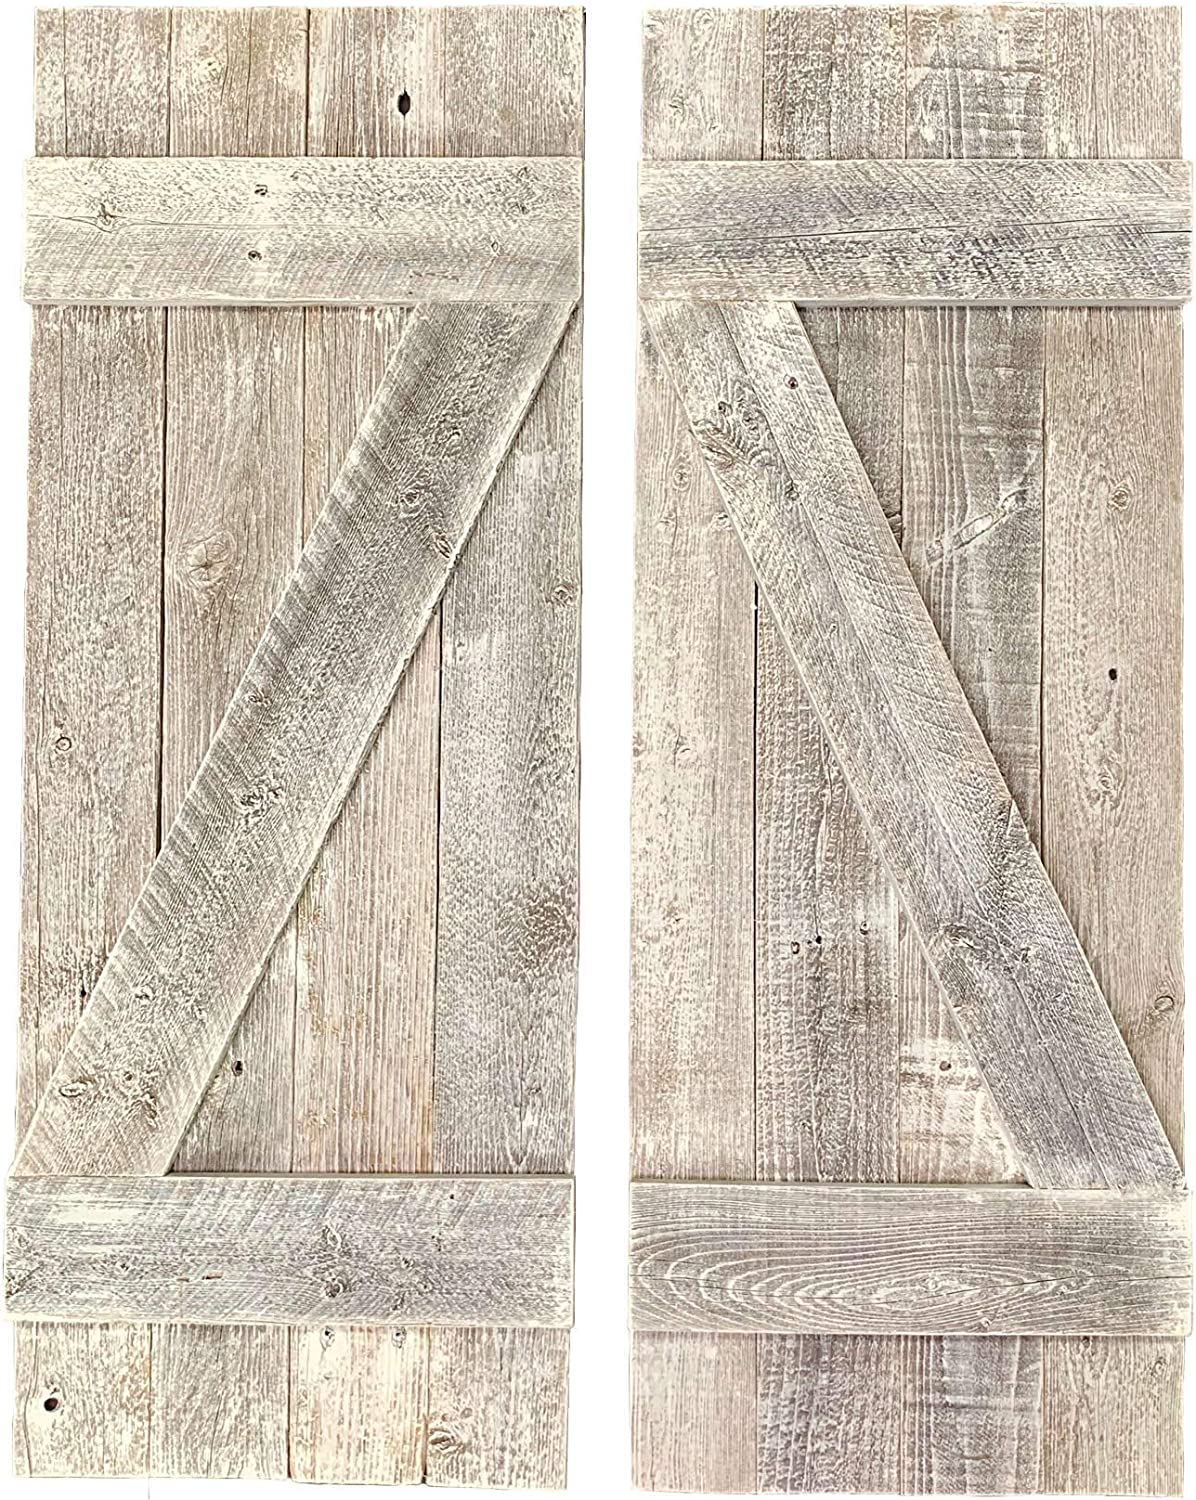 BarnwoodUSA | Rustic Farmhouse Window Shutters (Set of 2) | Made of 100% Reclaimed and Recycled Wood | Rustic Interior Window Shutters | Traditional Country Style Home Decor | White Wash | Made in USA